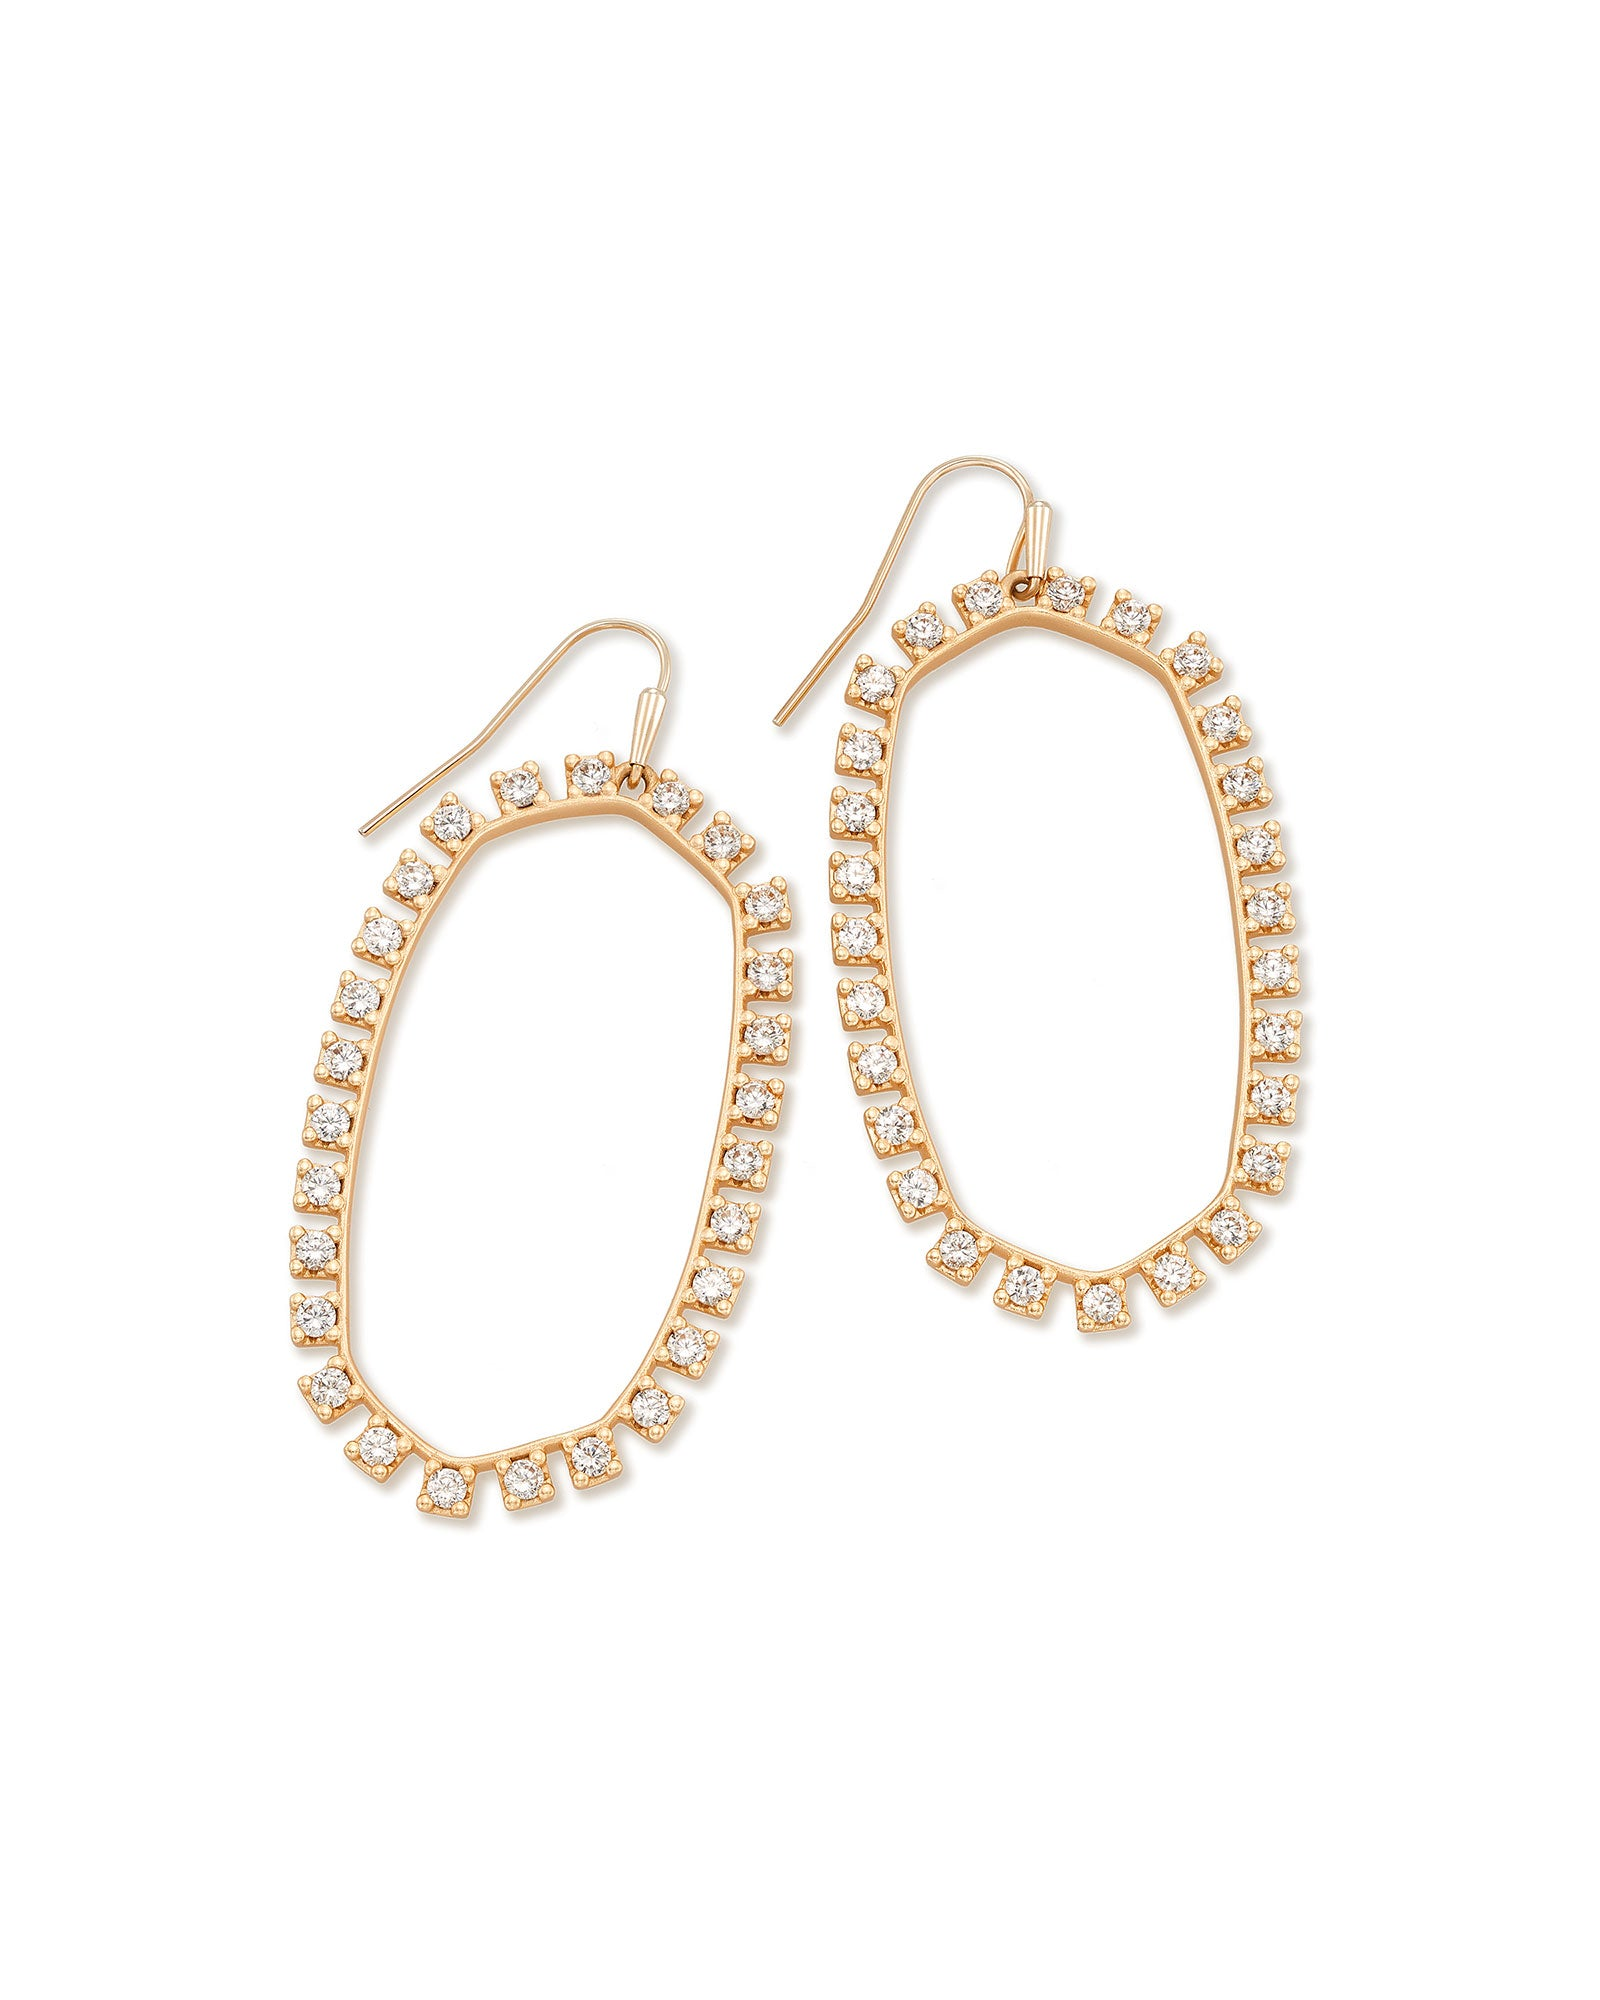 Kendra Scott Danielle Open Frame Crystal Statement Earrings In Rose Gold